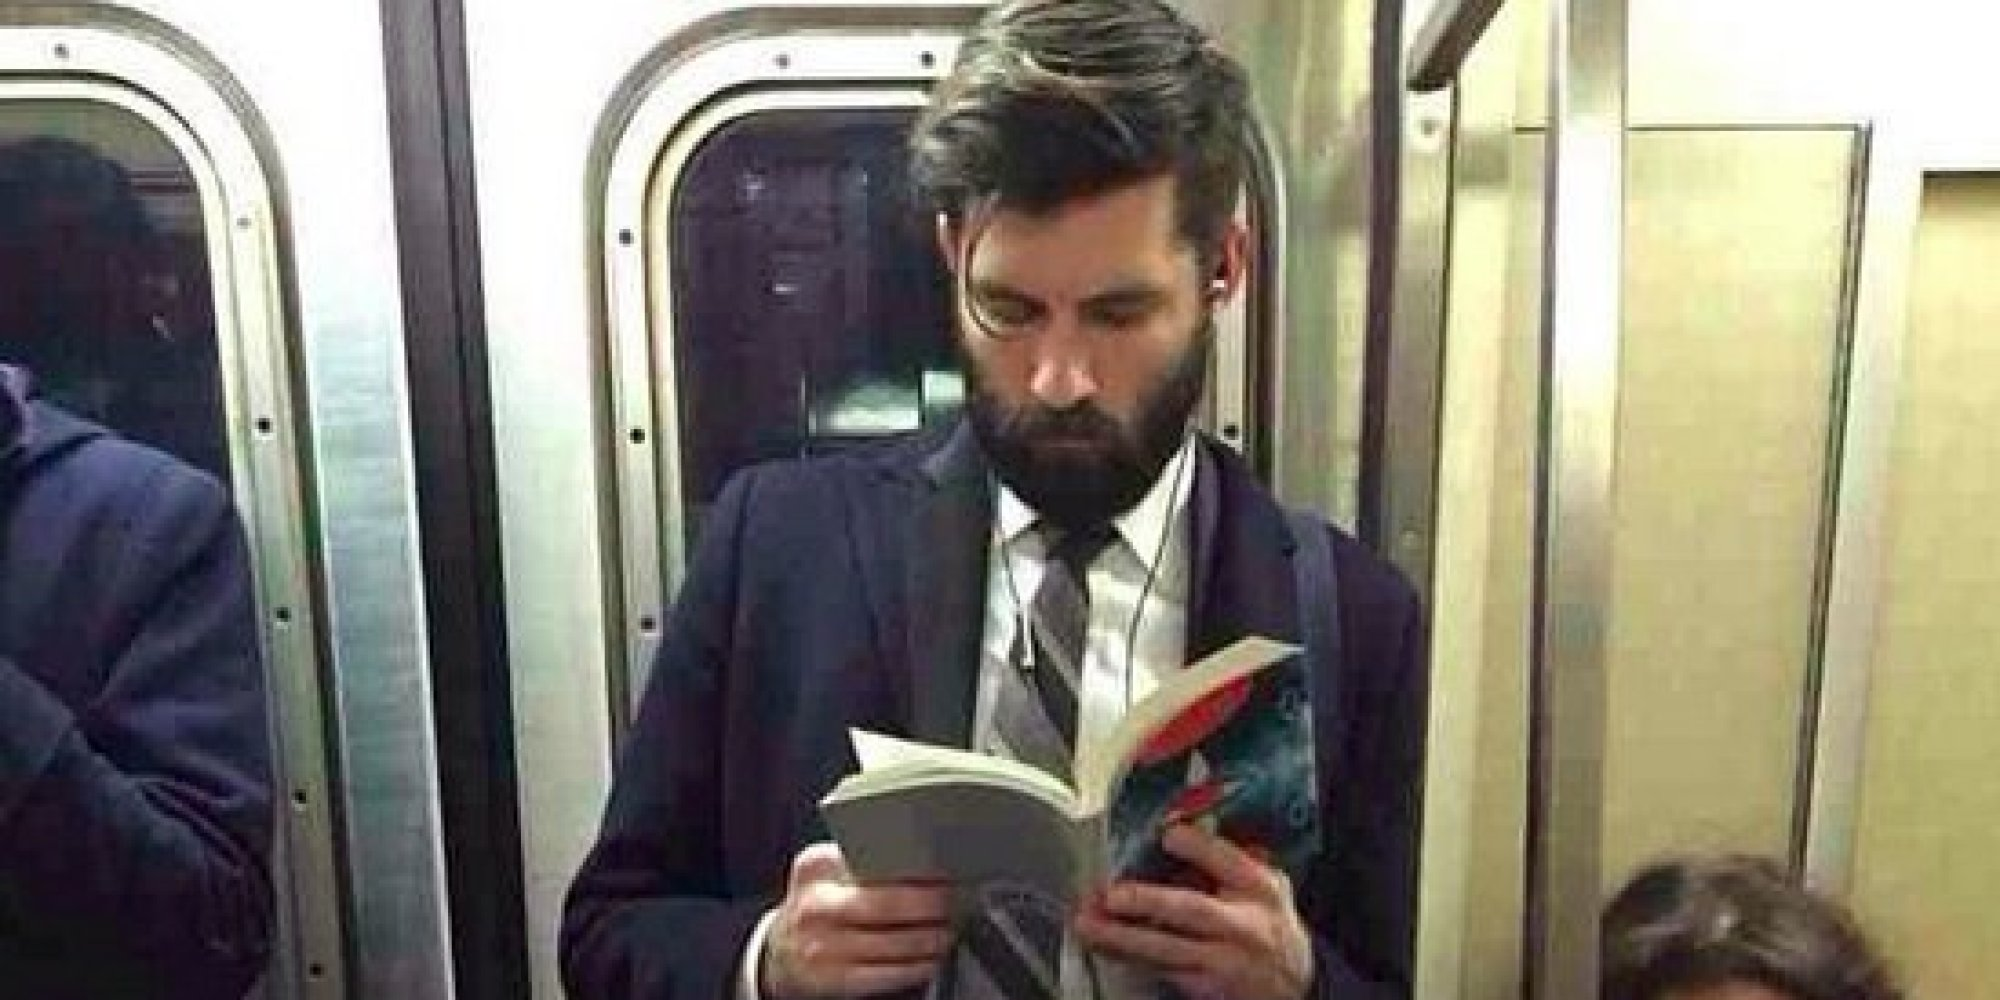 Man Reading Book On Tube Admits He Hates Reading - Sick ...